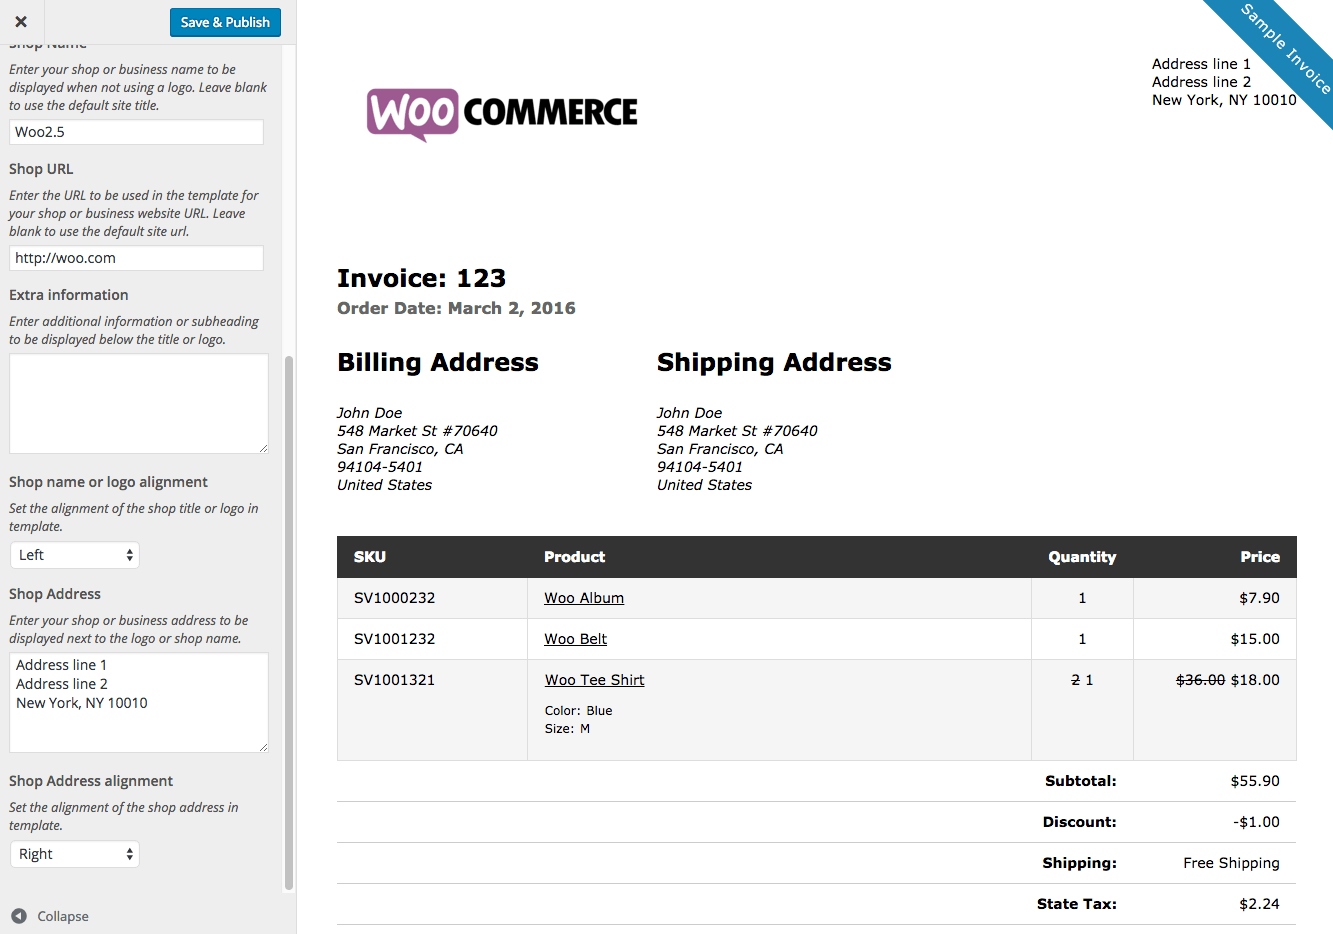 Shopdesignsus  Winning Print Invoices Amp Packing Lists  Woocommerce With Likable Woocommerce Print Invoices  Packing Lists Customizer With Adorable Red Cross Donation Receipt Also Apple Crisp Receipt In Addition Electronic Receipts Template And Child Care Tax Receipt Template As Well As Cash Receipt Templates Additionally Fake Gas Receipts From Woocommercecom With Shopdesignsus  Likable Print Invoices Amp Packing Lists  Woocommerce With Adorable Woocommerce Print Invoices  Packing Lists Customizer And Winning Red Cross Donation Receipt Also Apple Crisp Receipt In Addition Electronic Receipts Template From Woocommercecom